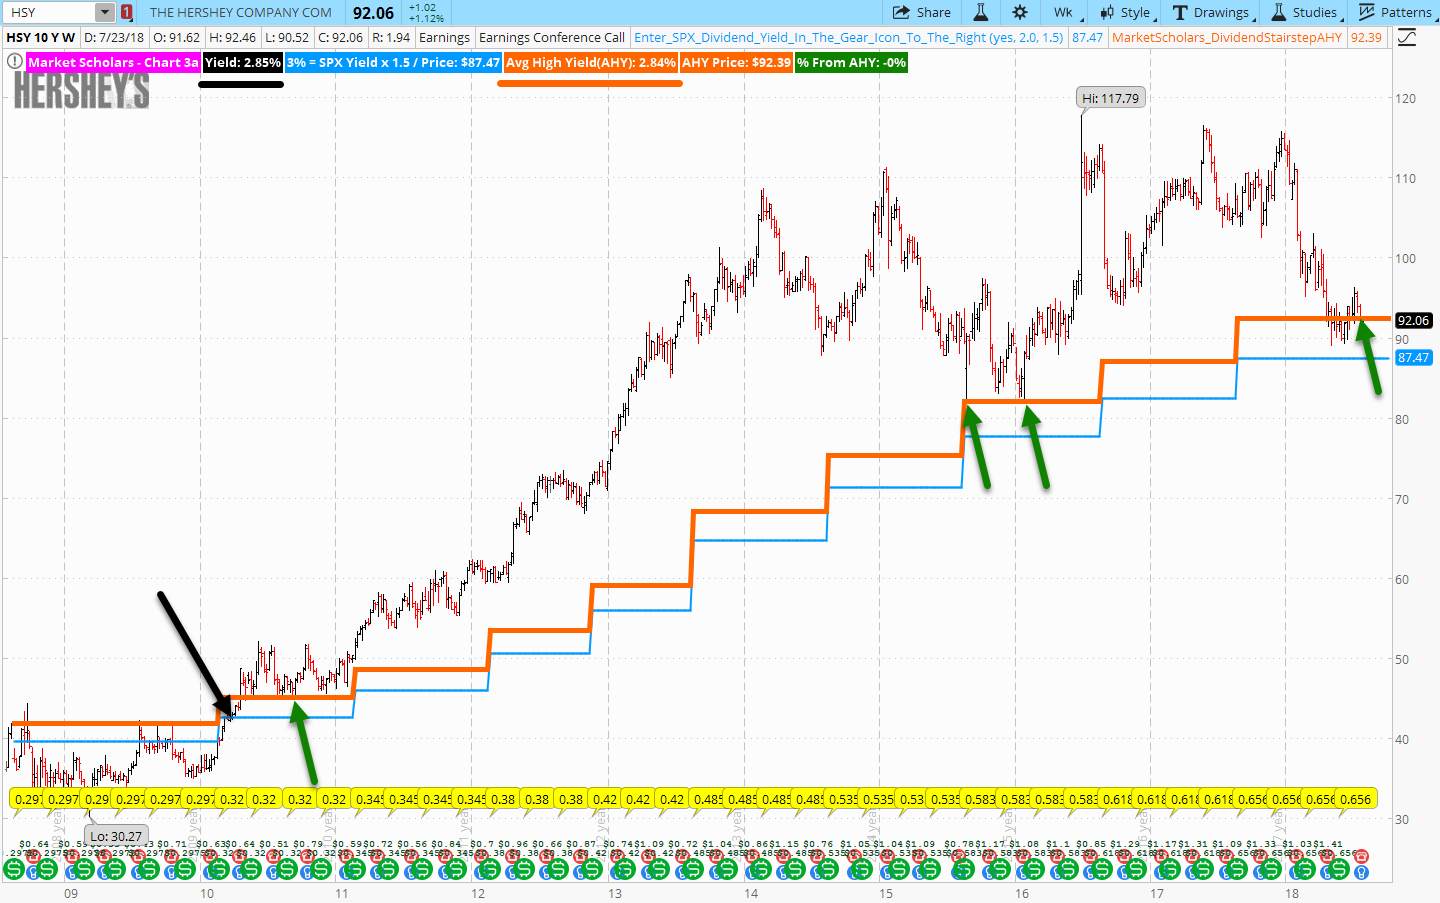 hersheys stock chart analysis dividends and hsy performance price history_25 july